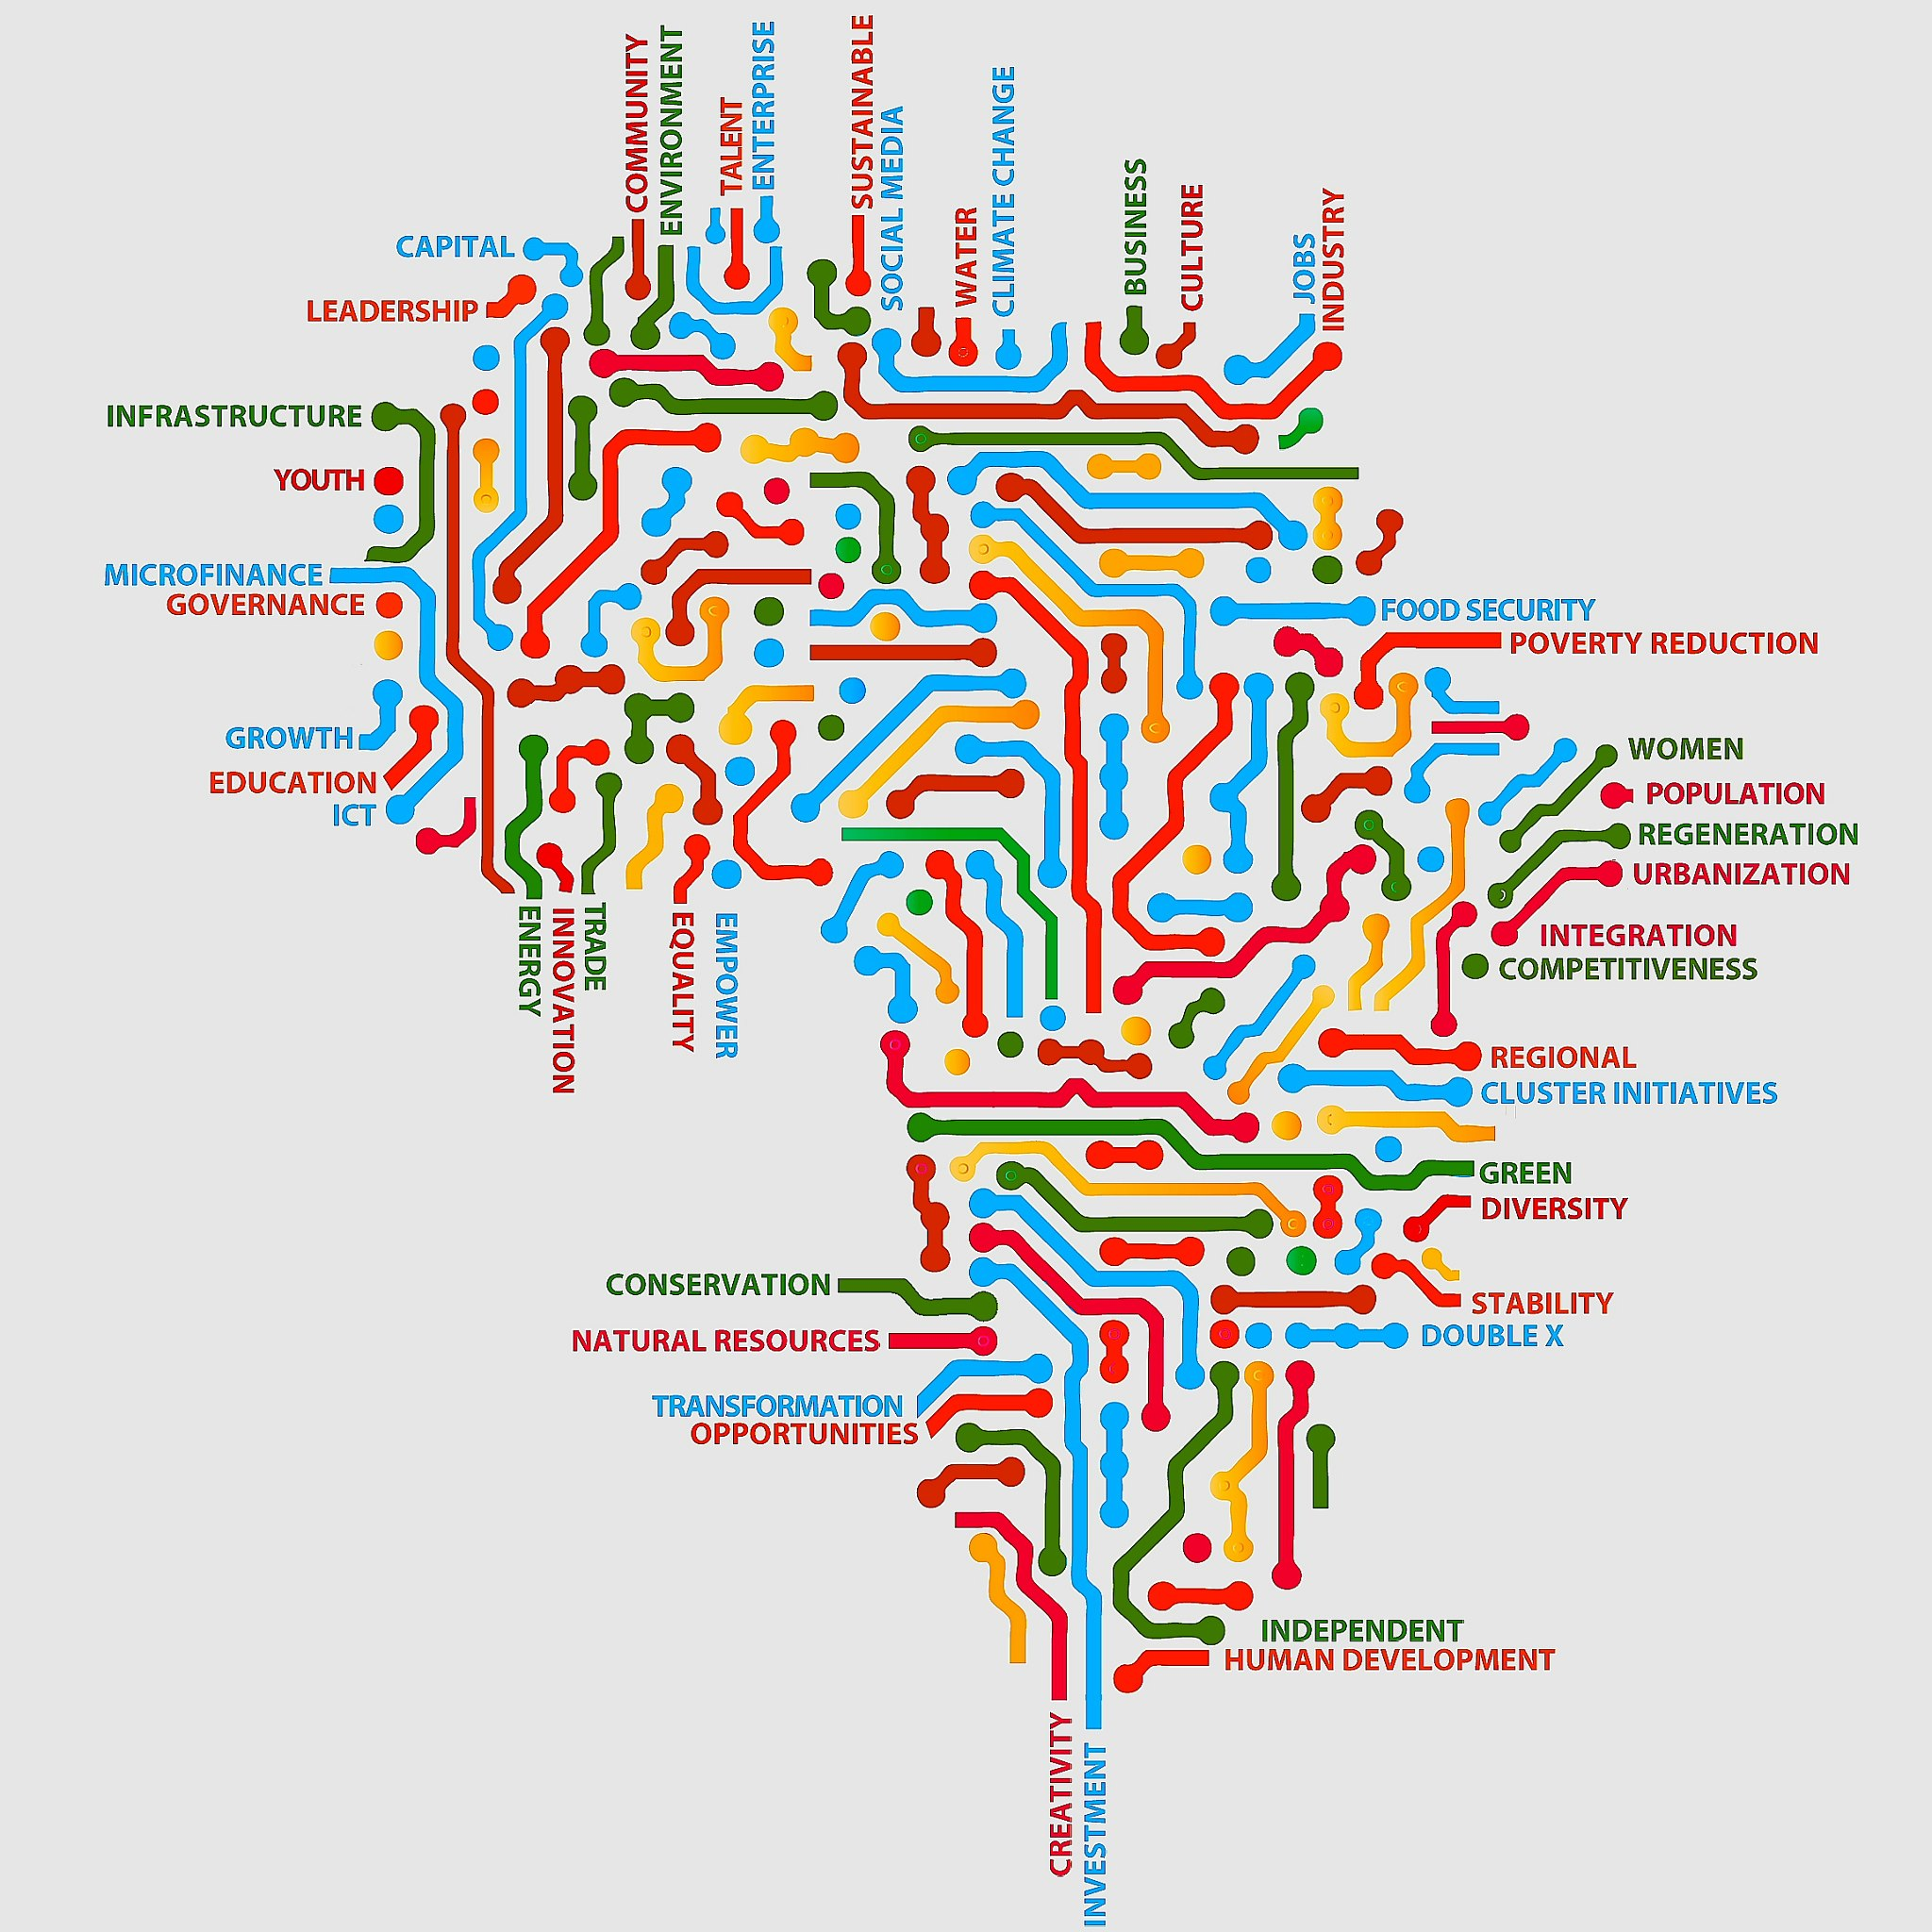 OXFORD UNIVERSITY PAN-AFRICAN CONFERENCE 2013 - Saturday May 4th ...